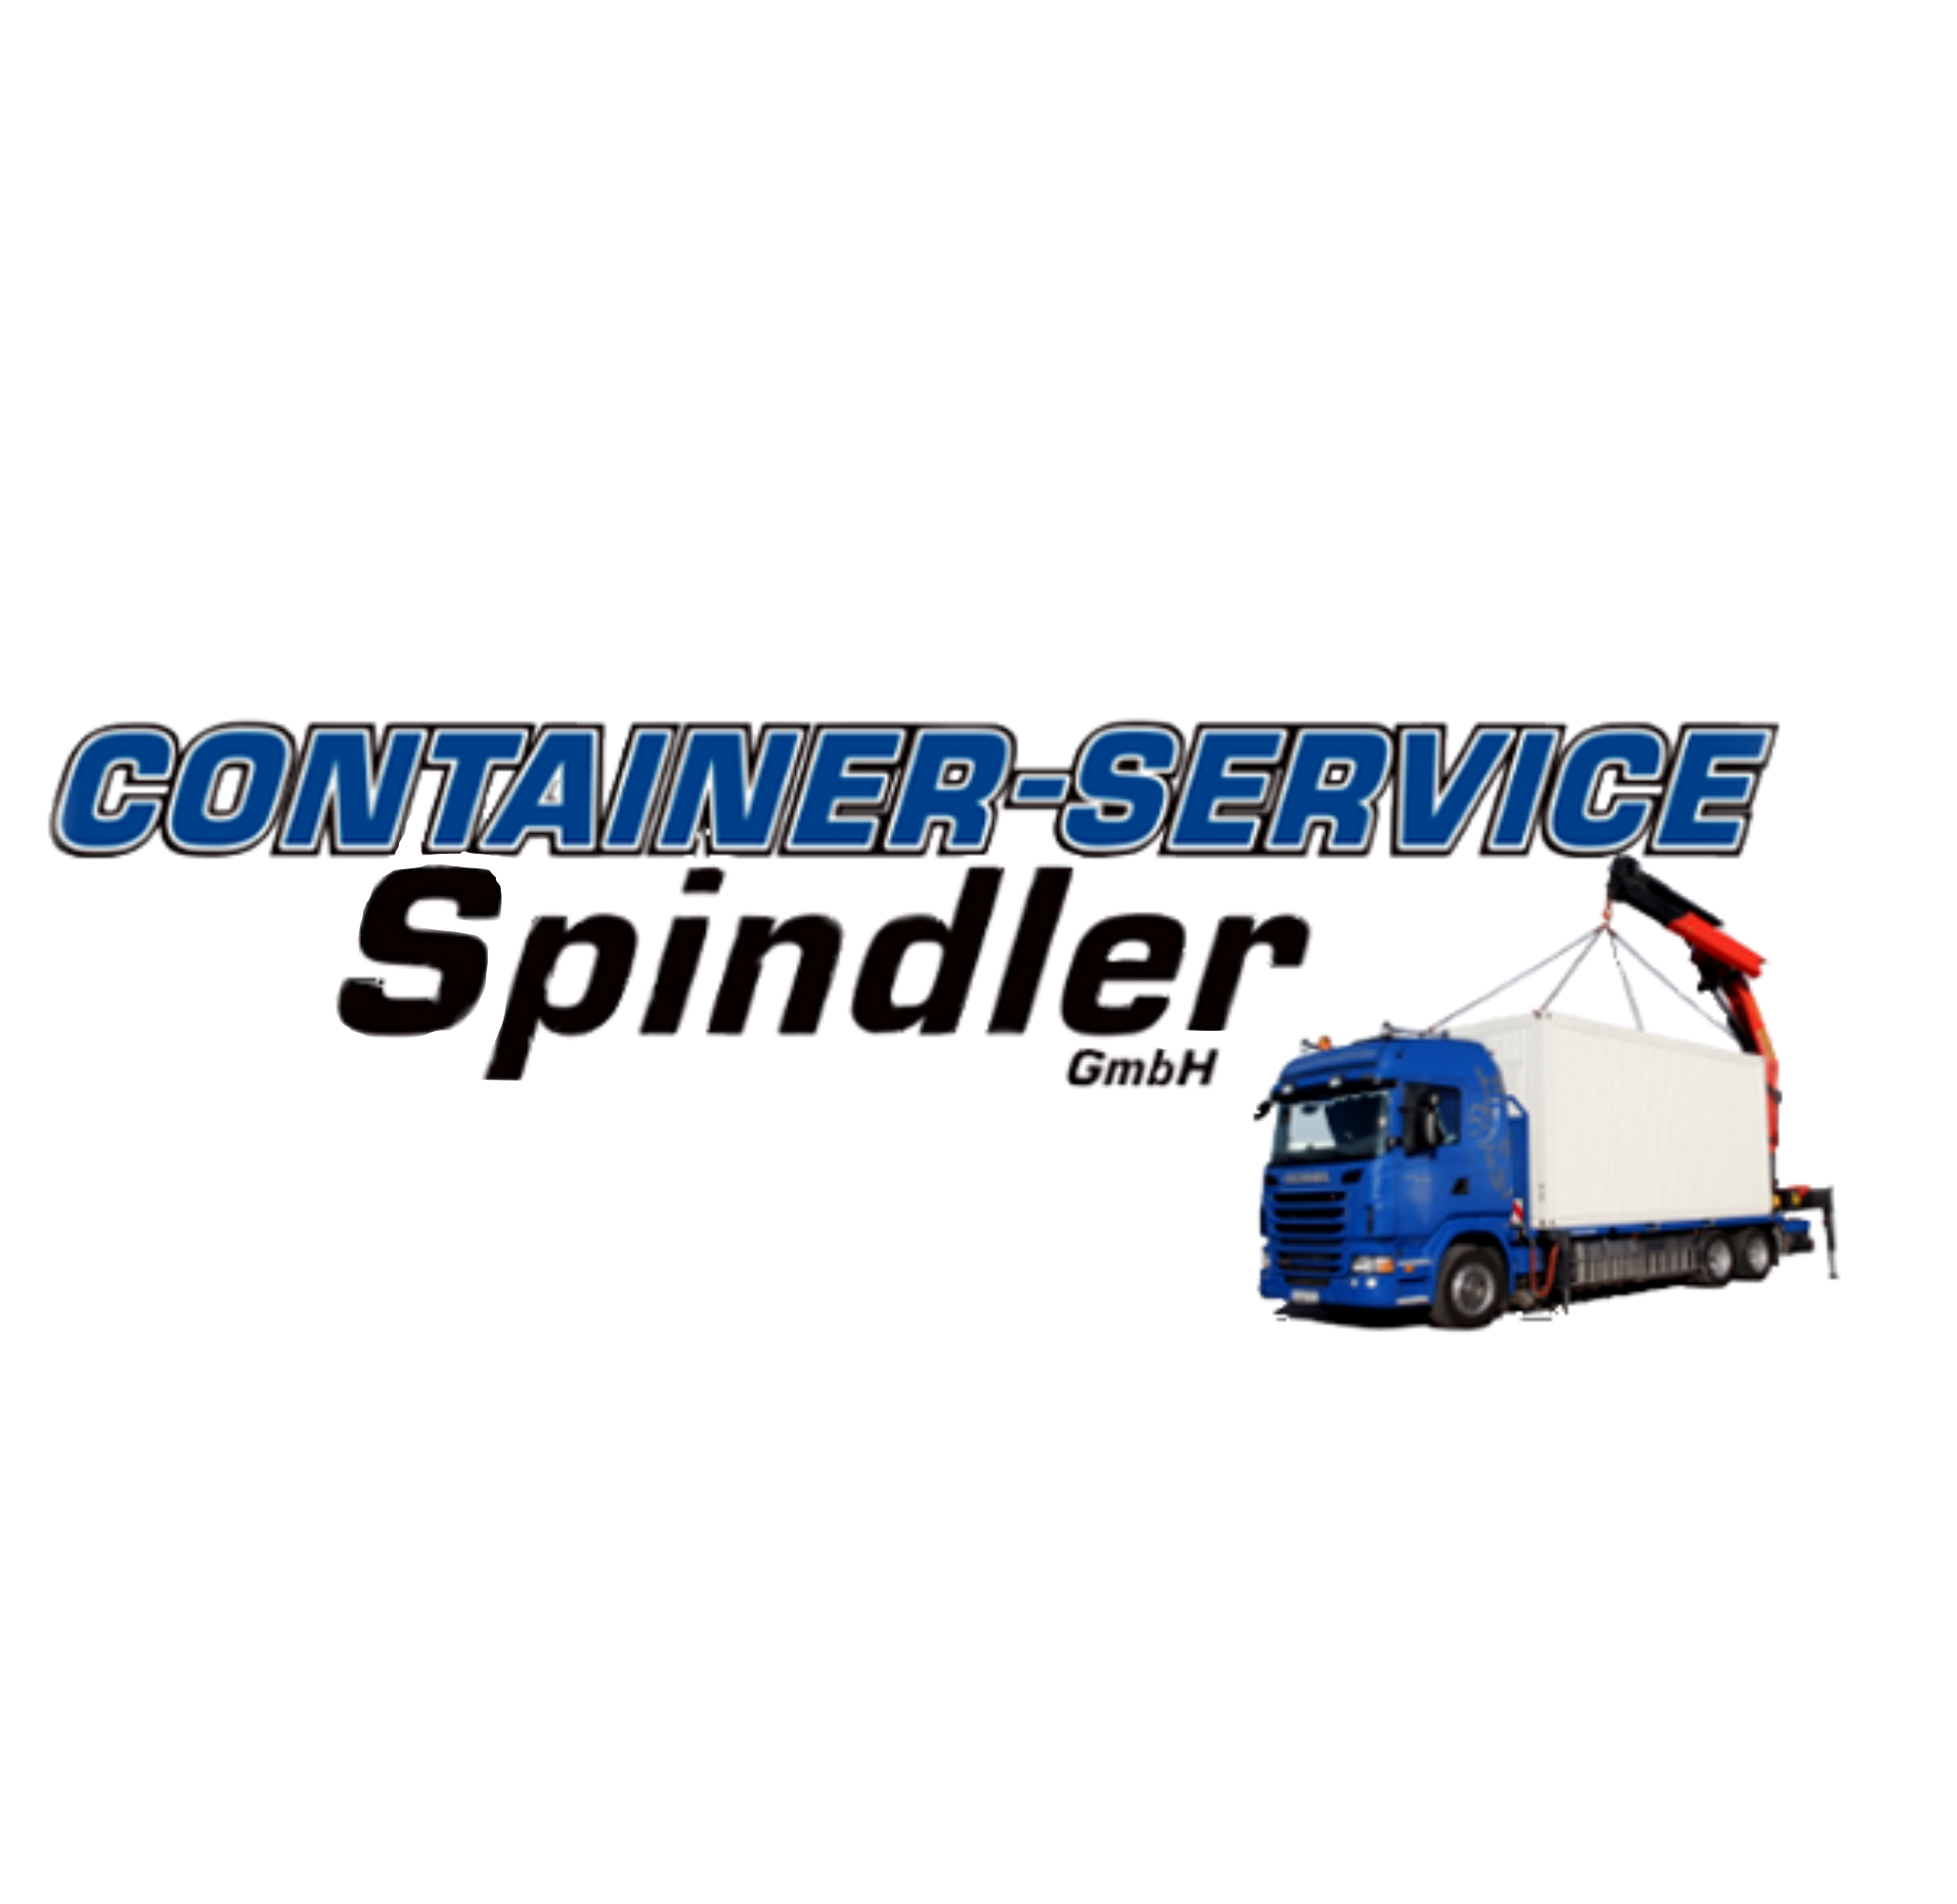 Container-Service Spindler GmbH